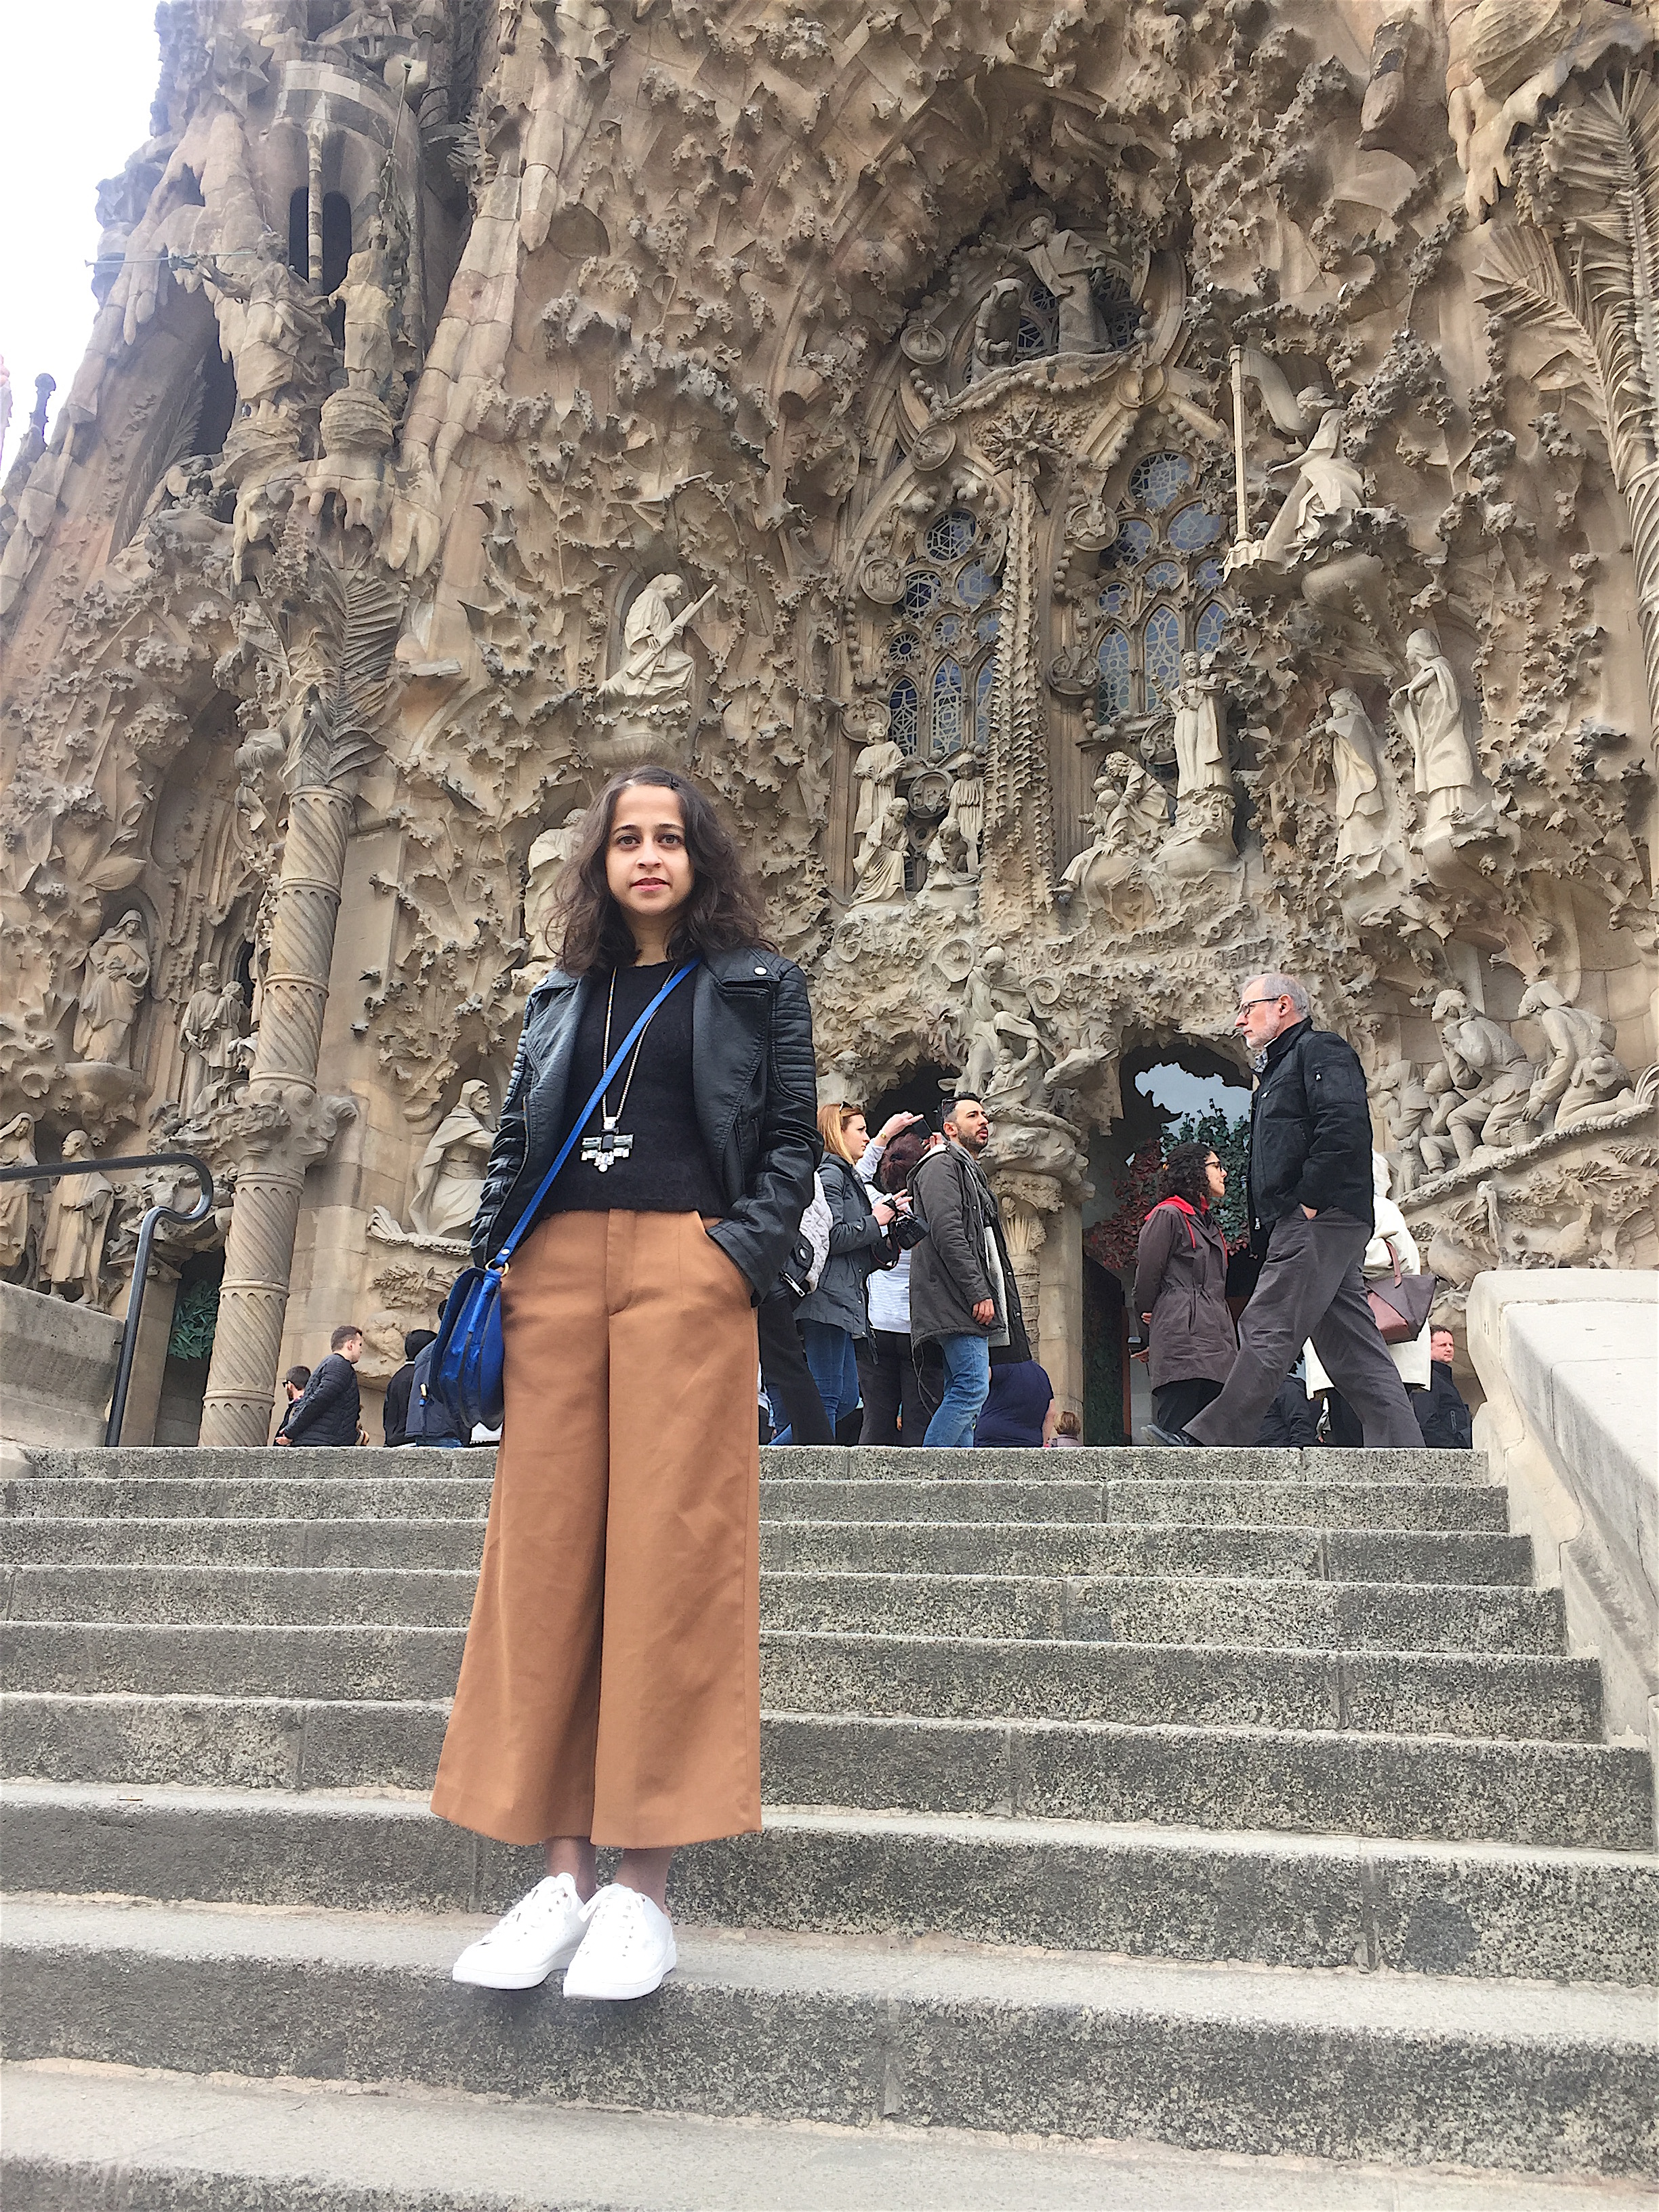 Barcelona sagrada familia city guide